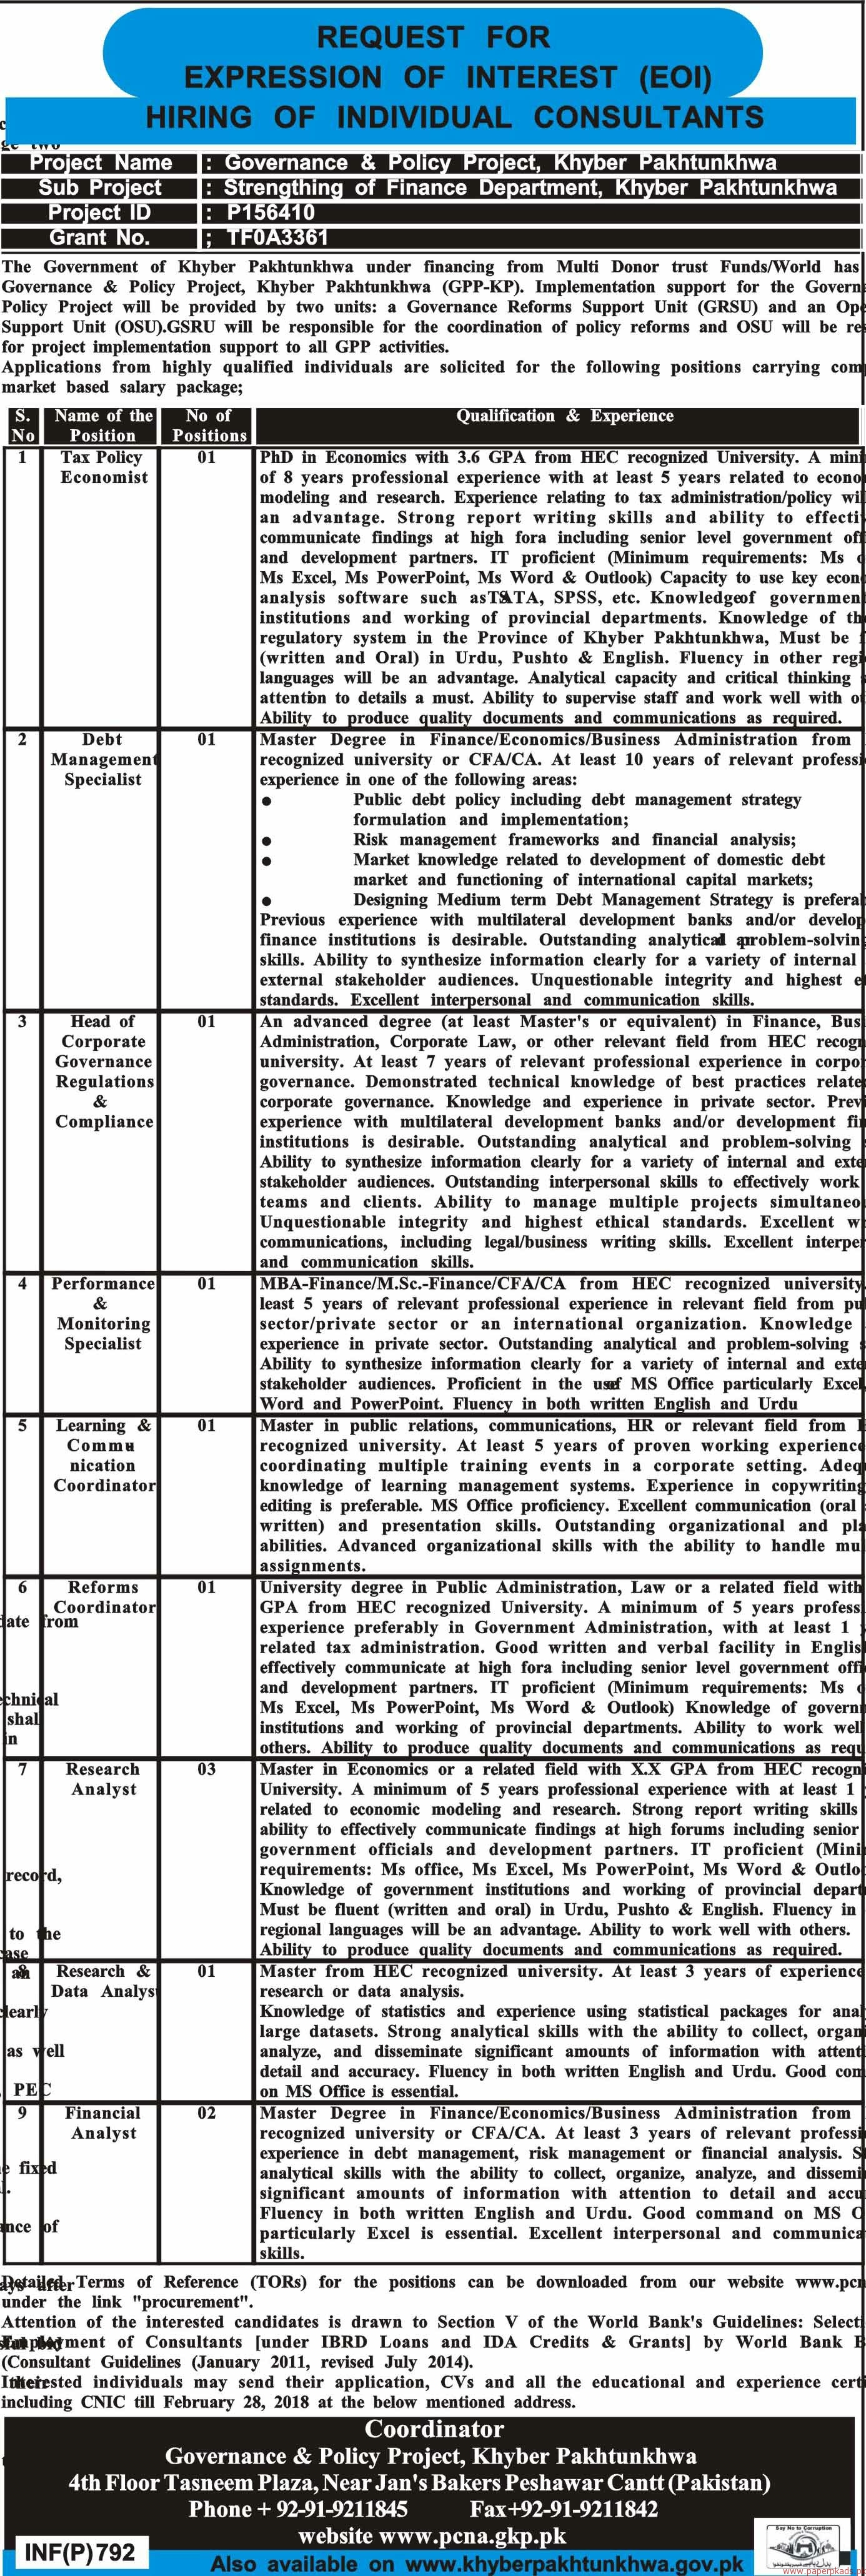 Governance & Policy Project Khyber Pakhtunkhwa Jobs 2018